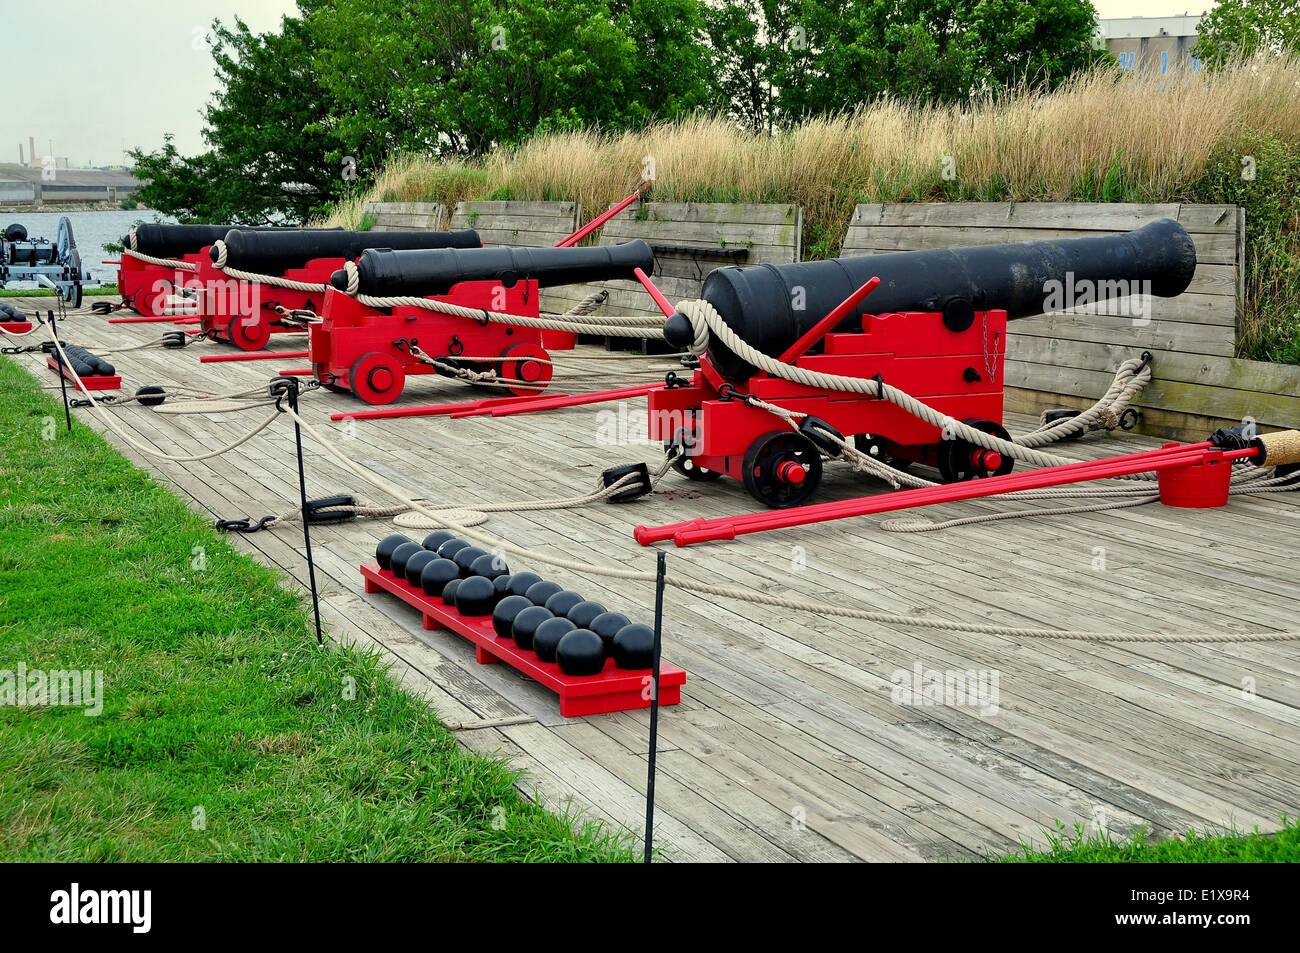 BALTIMORE, MARYLAND: Cannons at Fort McHenry National Historic Park - Stock Image